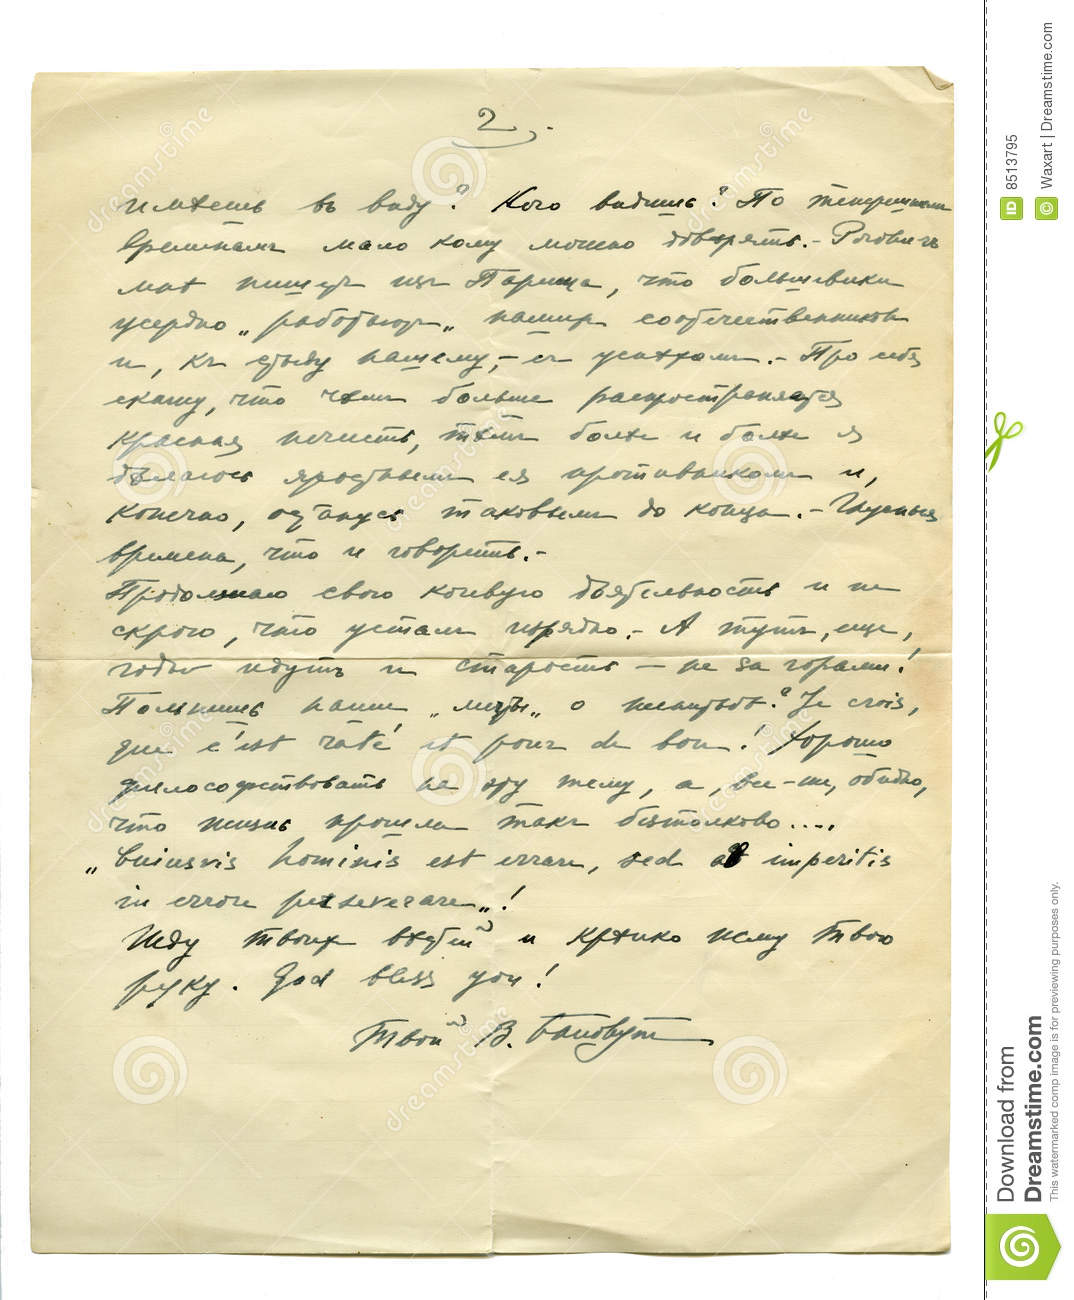 Very Old Handwritten Letter Royalty Free Stock Photo - Image: 8513795